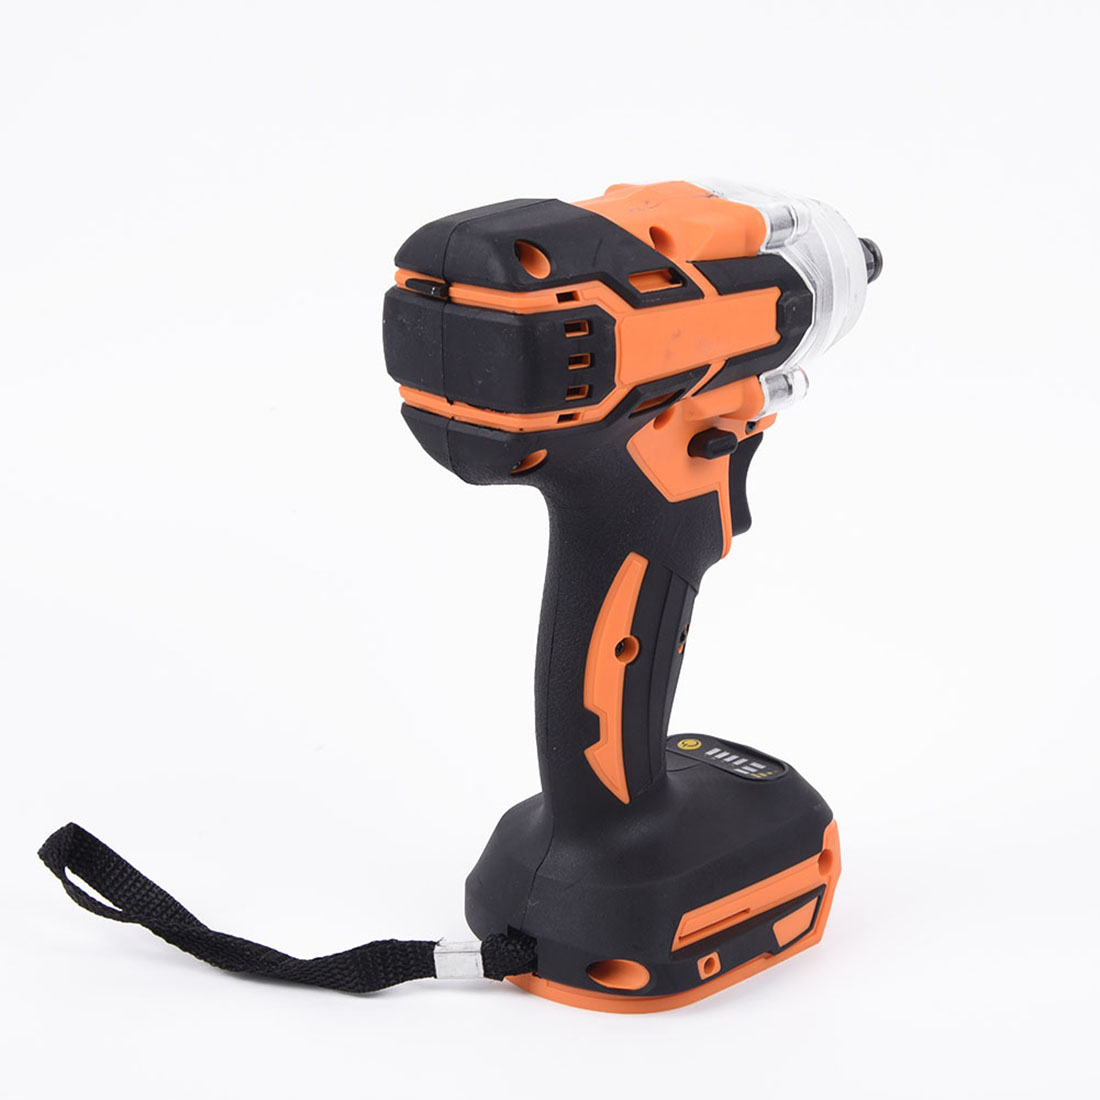 18V 520Nm Cordless Brushless Impact Wrench Body No Batteries For Makita Battery 18V Multi-purpose Power Tools